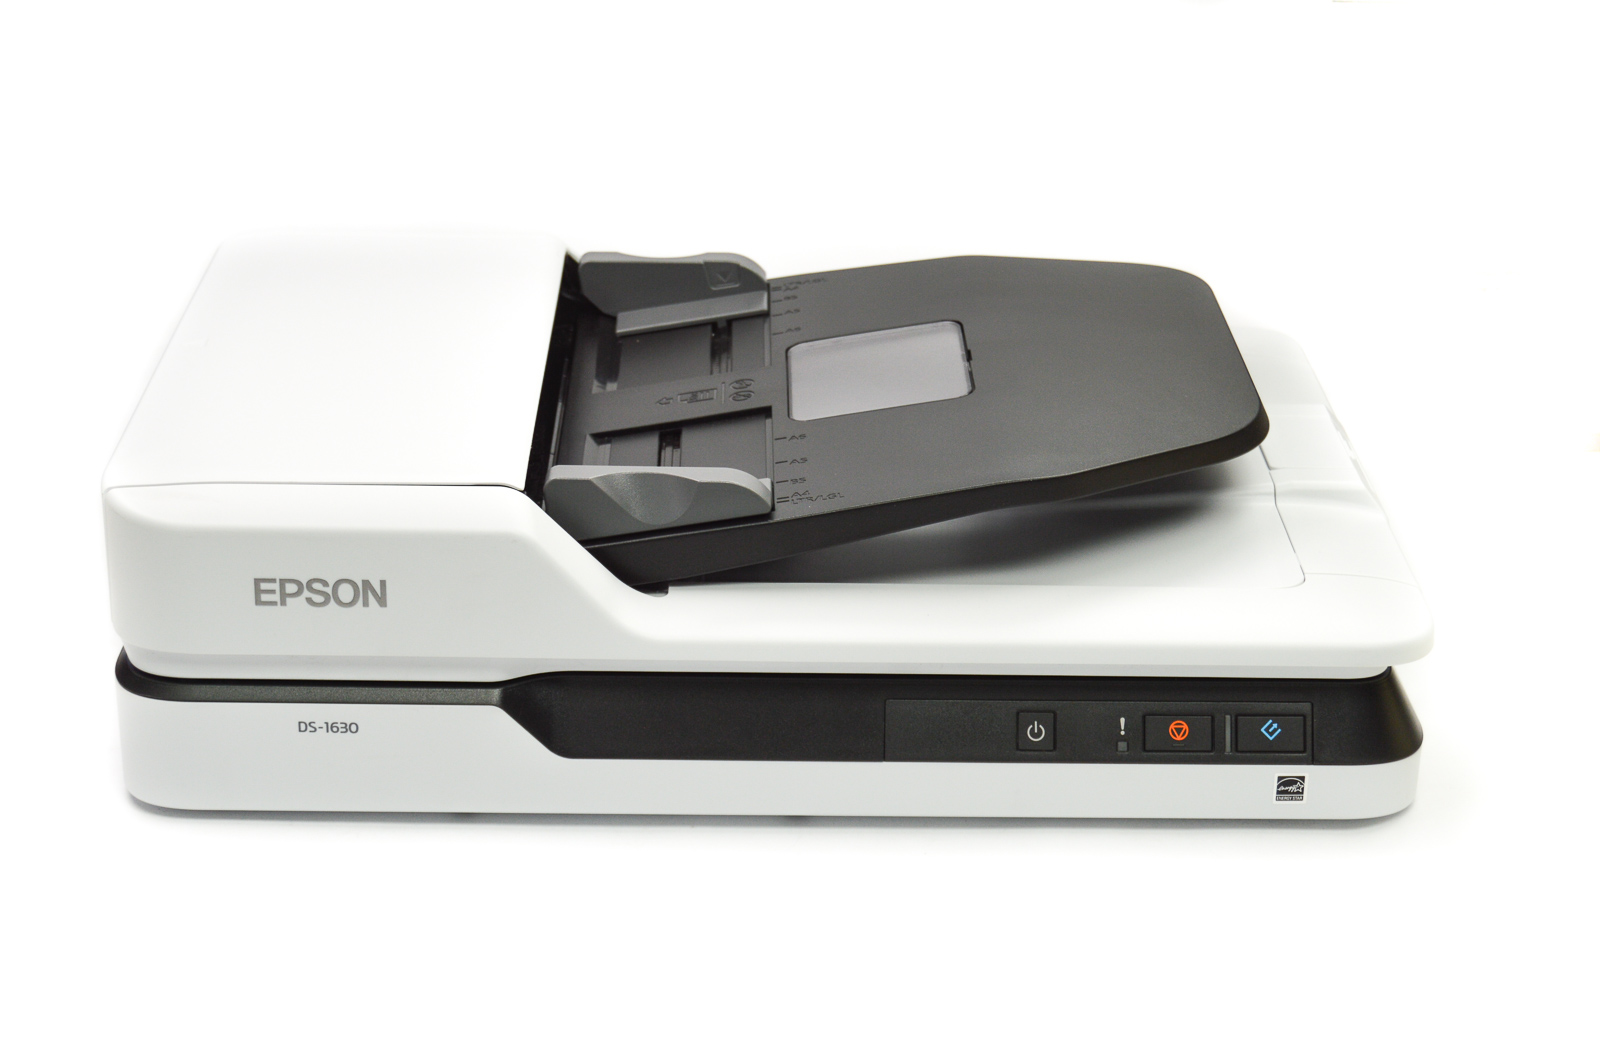 Epson Workforce DS-1630 A4 Flatbed Scanner 1200dpi